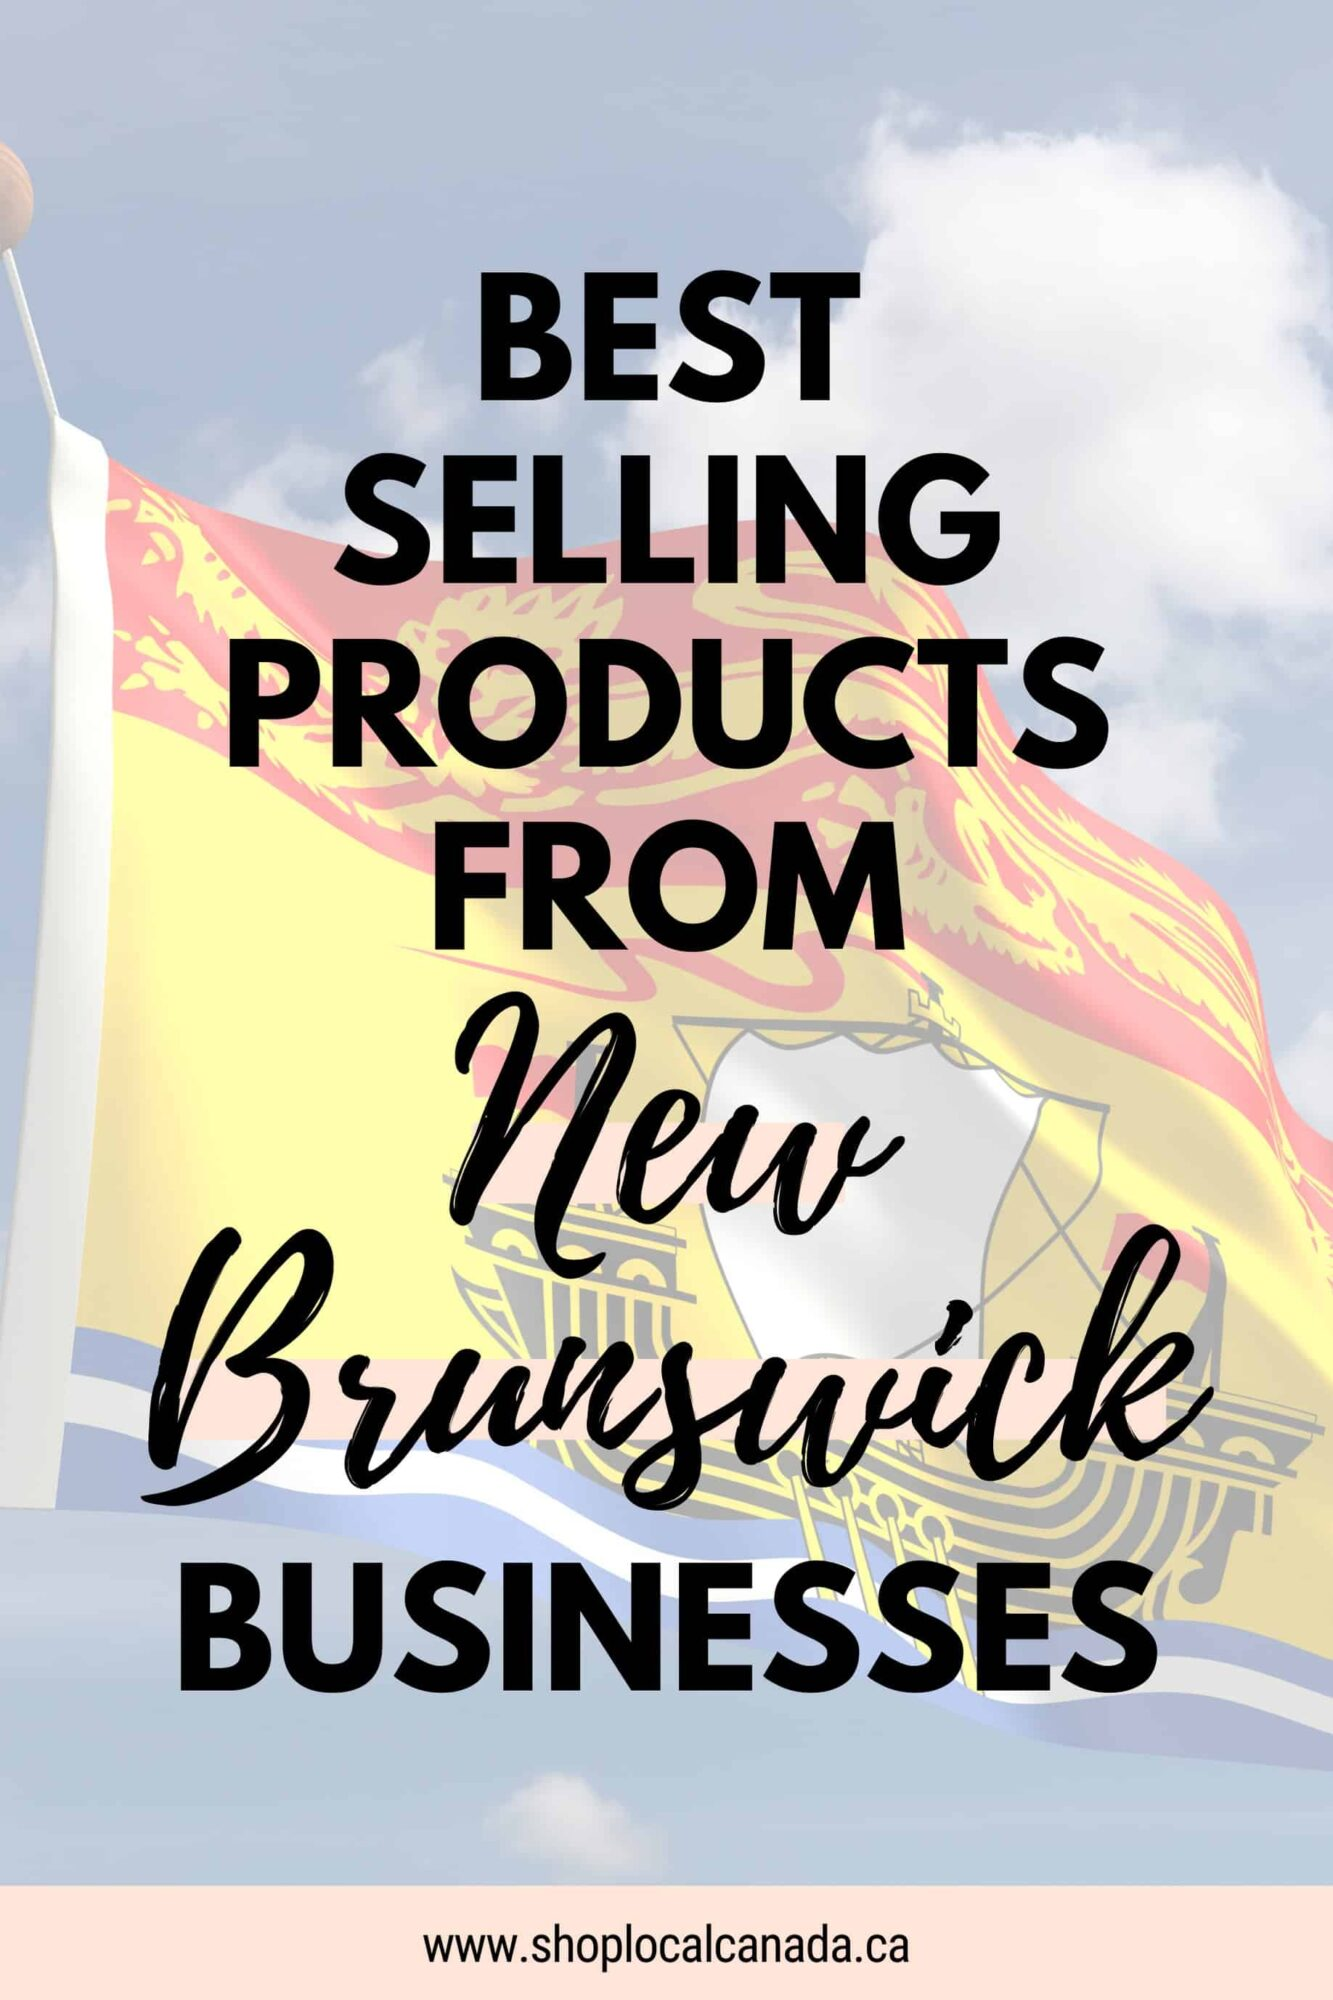 Best Selling Products From New Brunswick Businesses